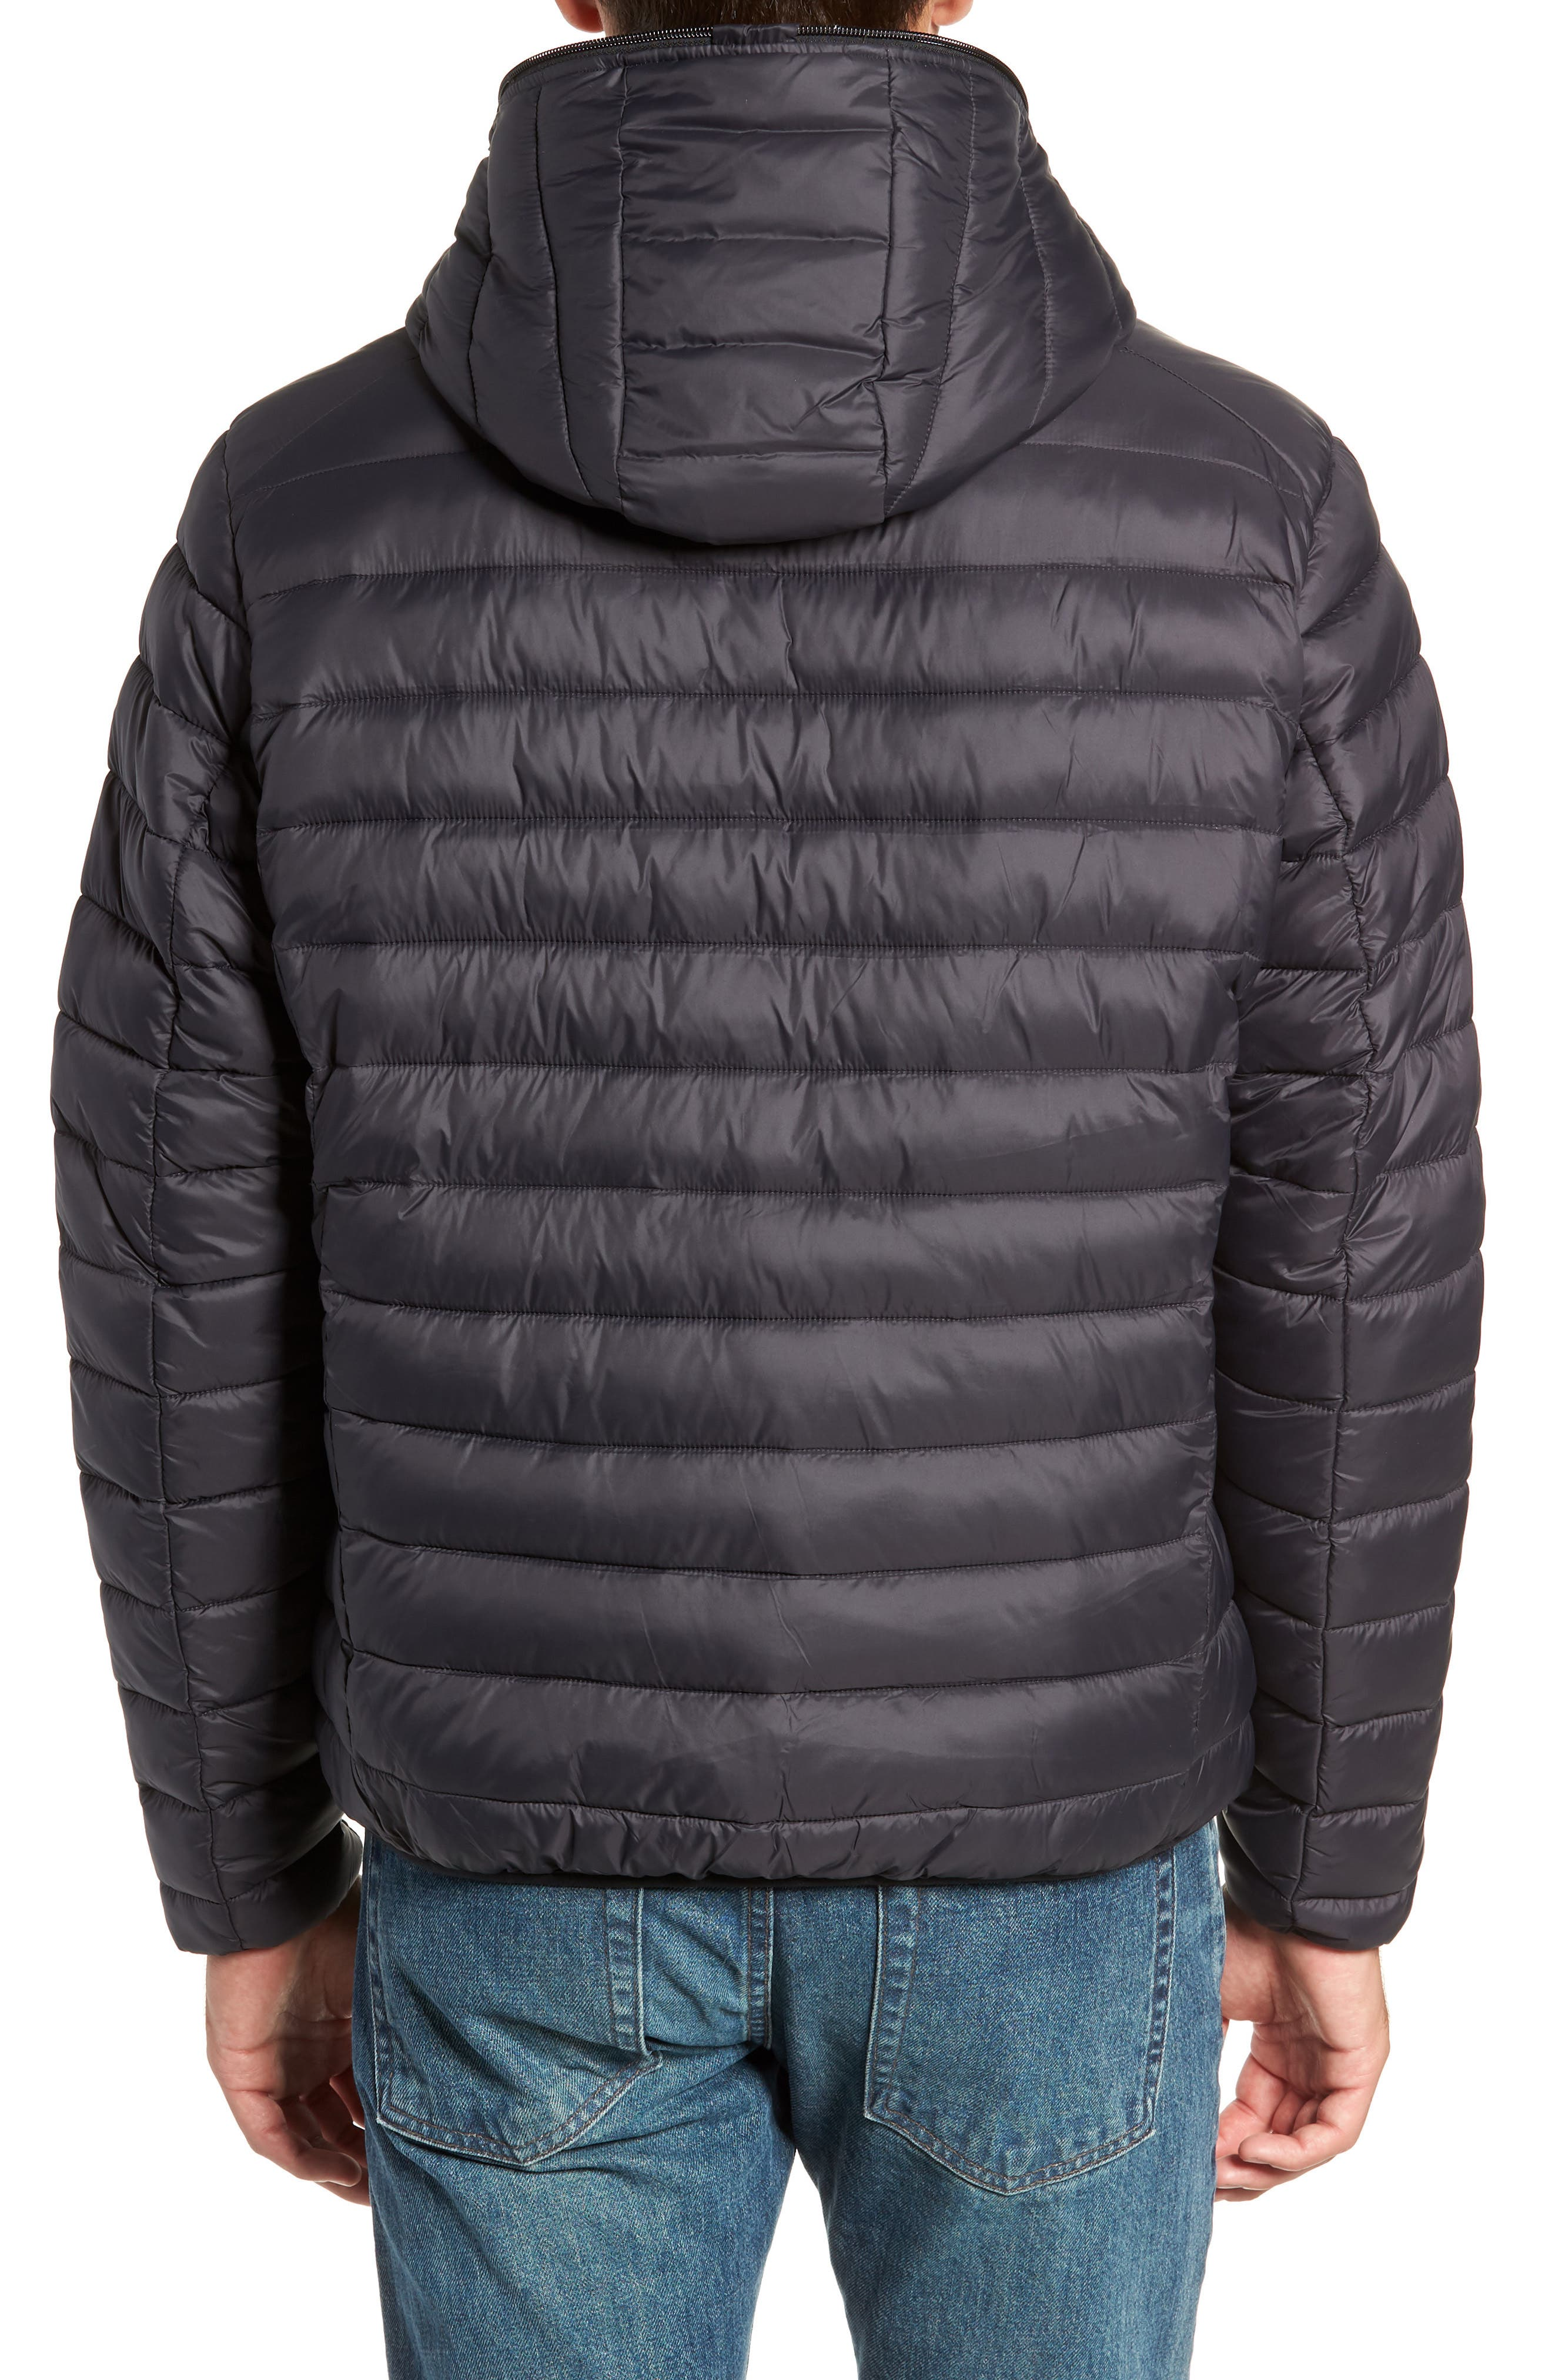 Hooded PLUMTECH<sup>®</sup> Insulated Packable Jacket,                             Alternate thumbnail 2, color,                             001